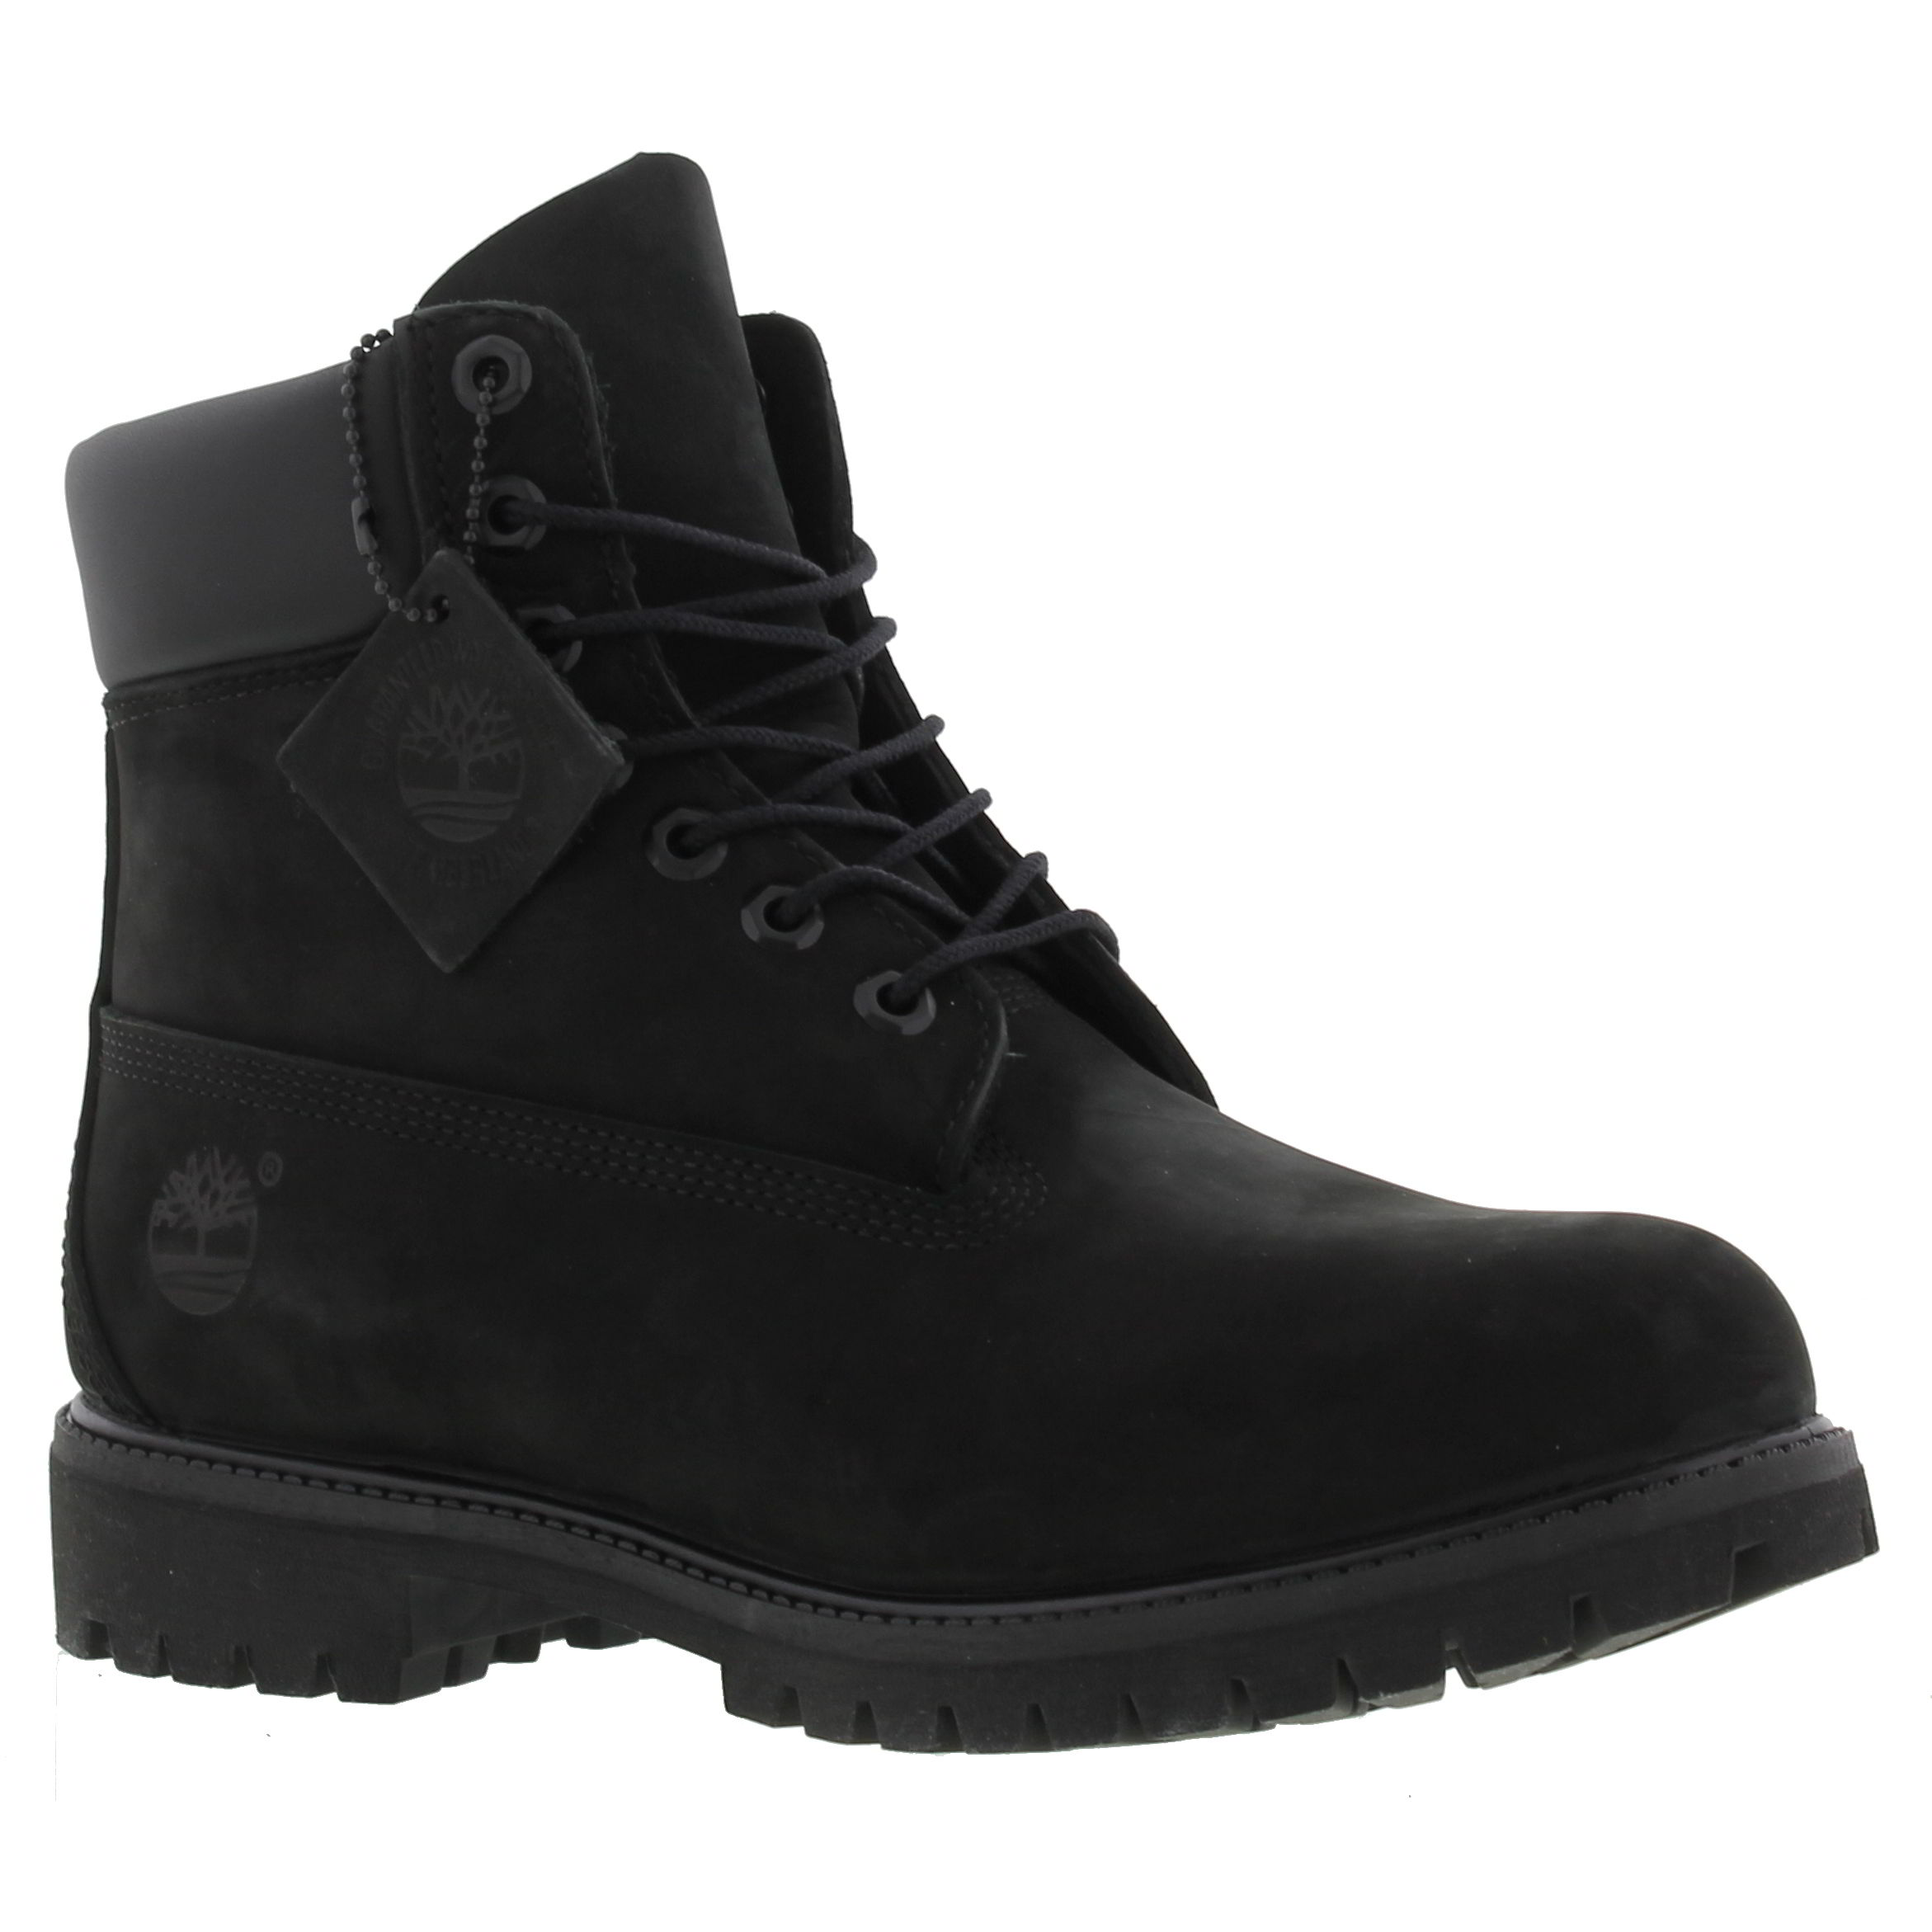 6091a3bc09286 Timberland 6 Inch Classic Premium Mens Wide Black Waterproof Boots ...